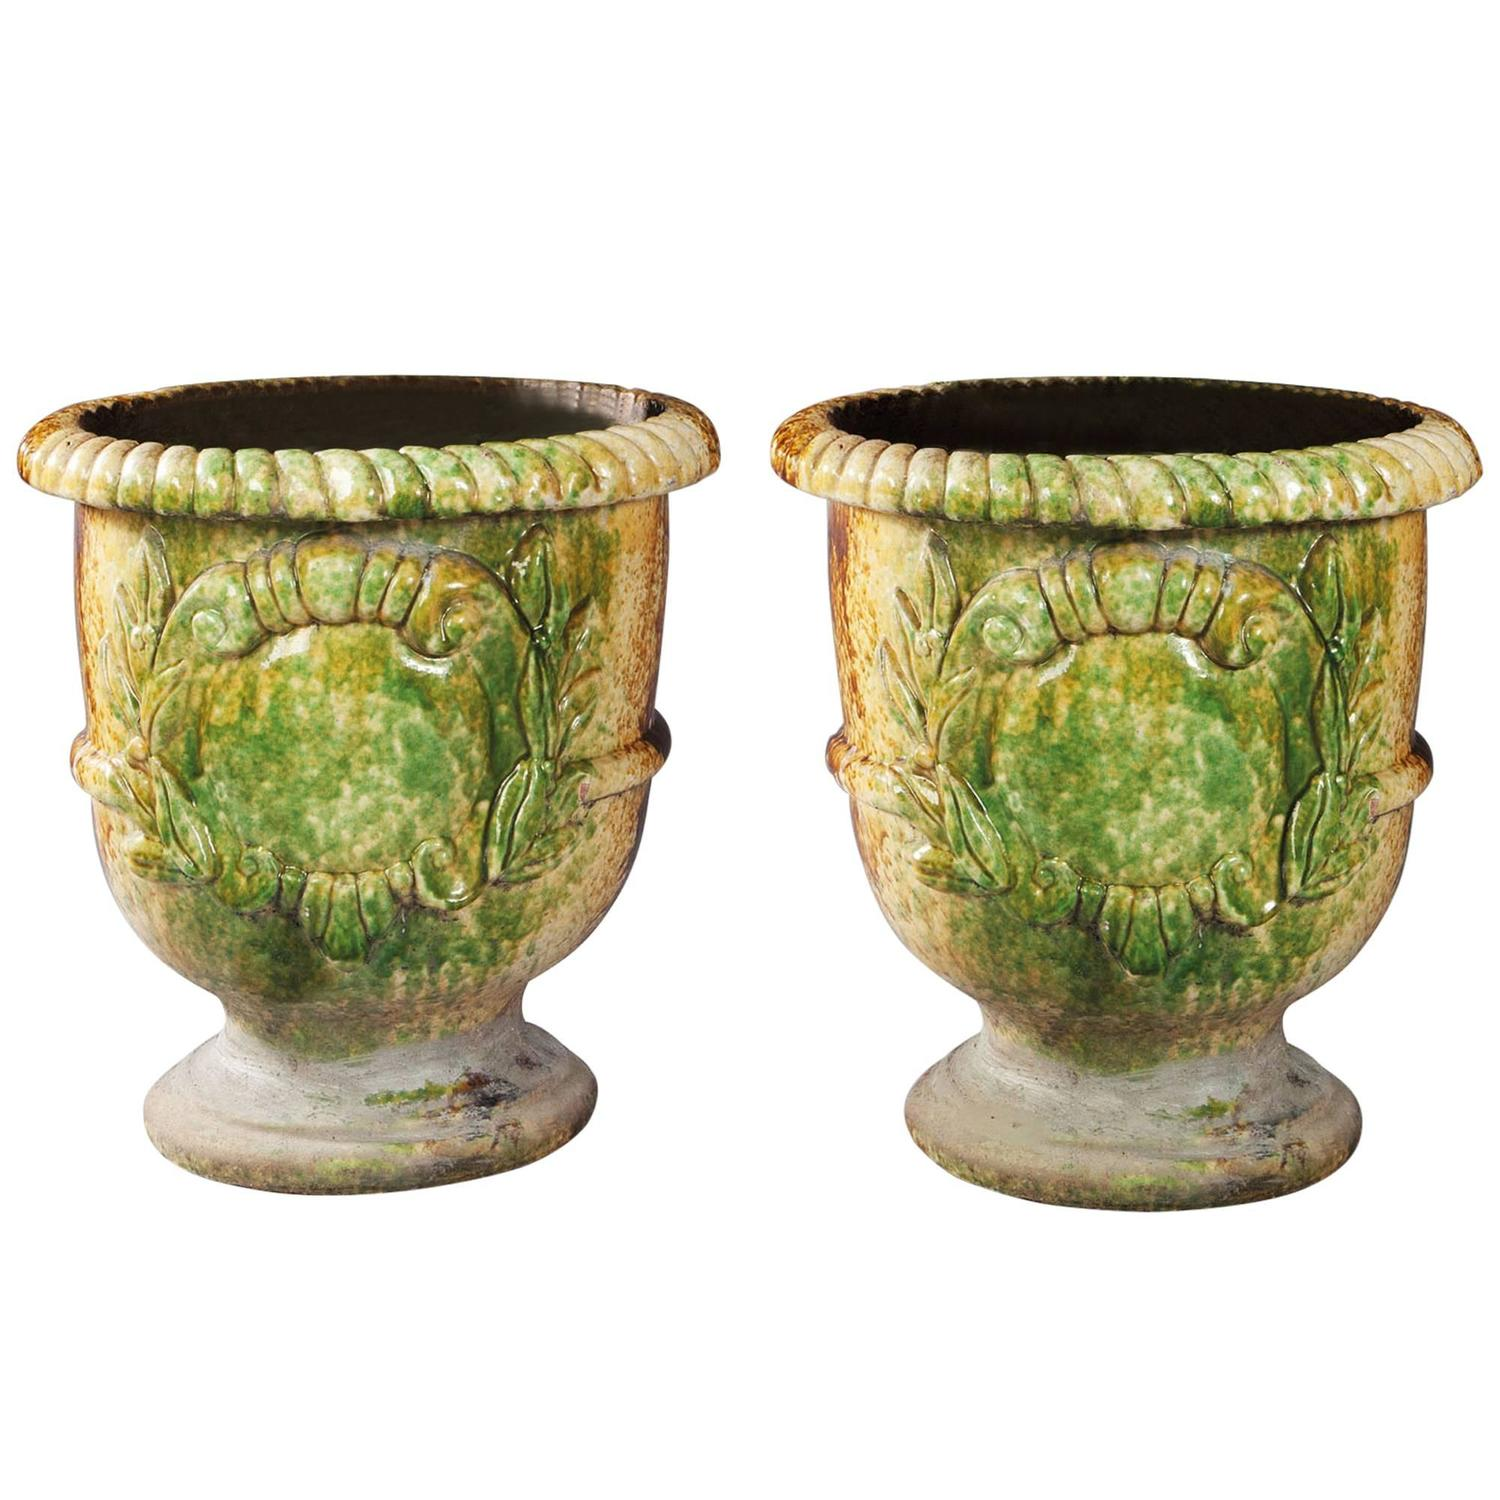 Pair Of Italian Large Glazed Terracotta Garden Pots At 1stdibs